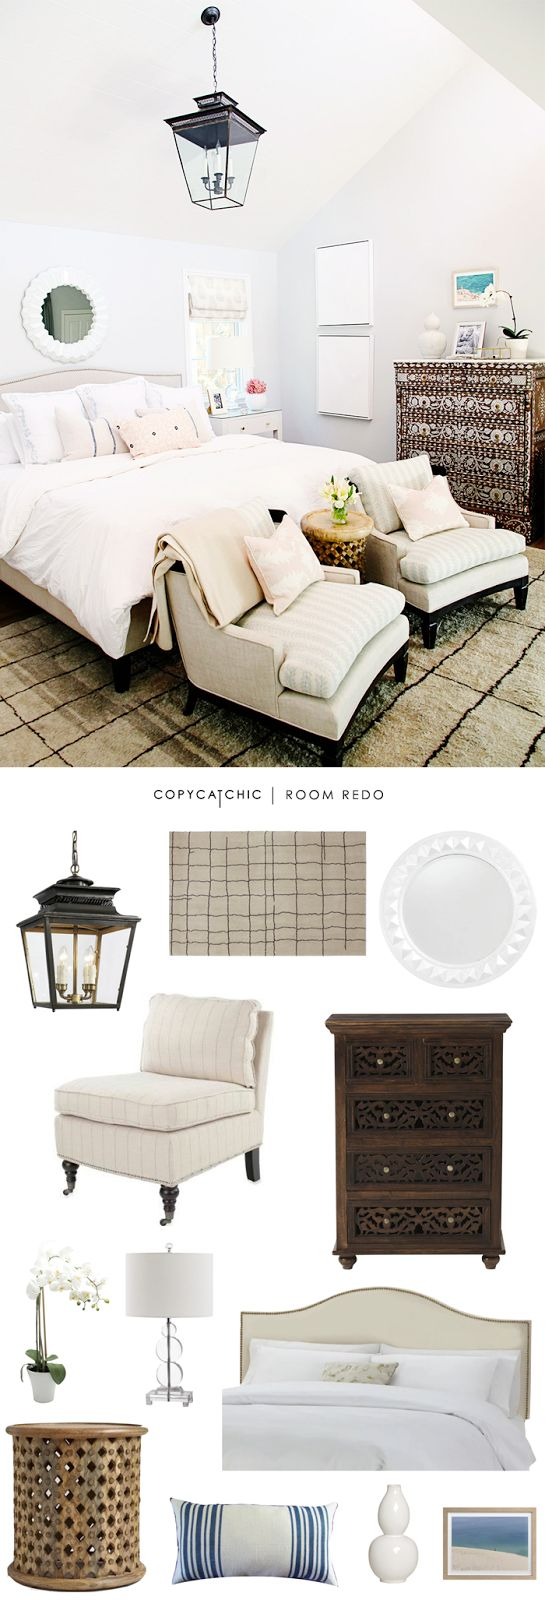 Copy Cat Chic: Copy Cat Chic Room Redo | Eclectic Ivory Bedroom by @audreycdyder